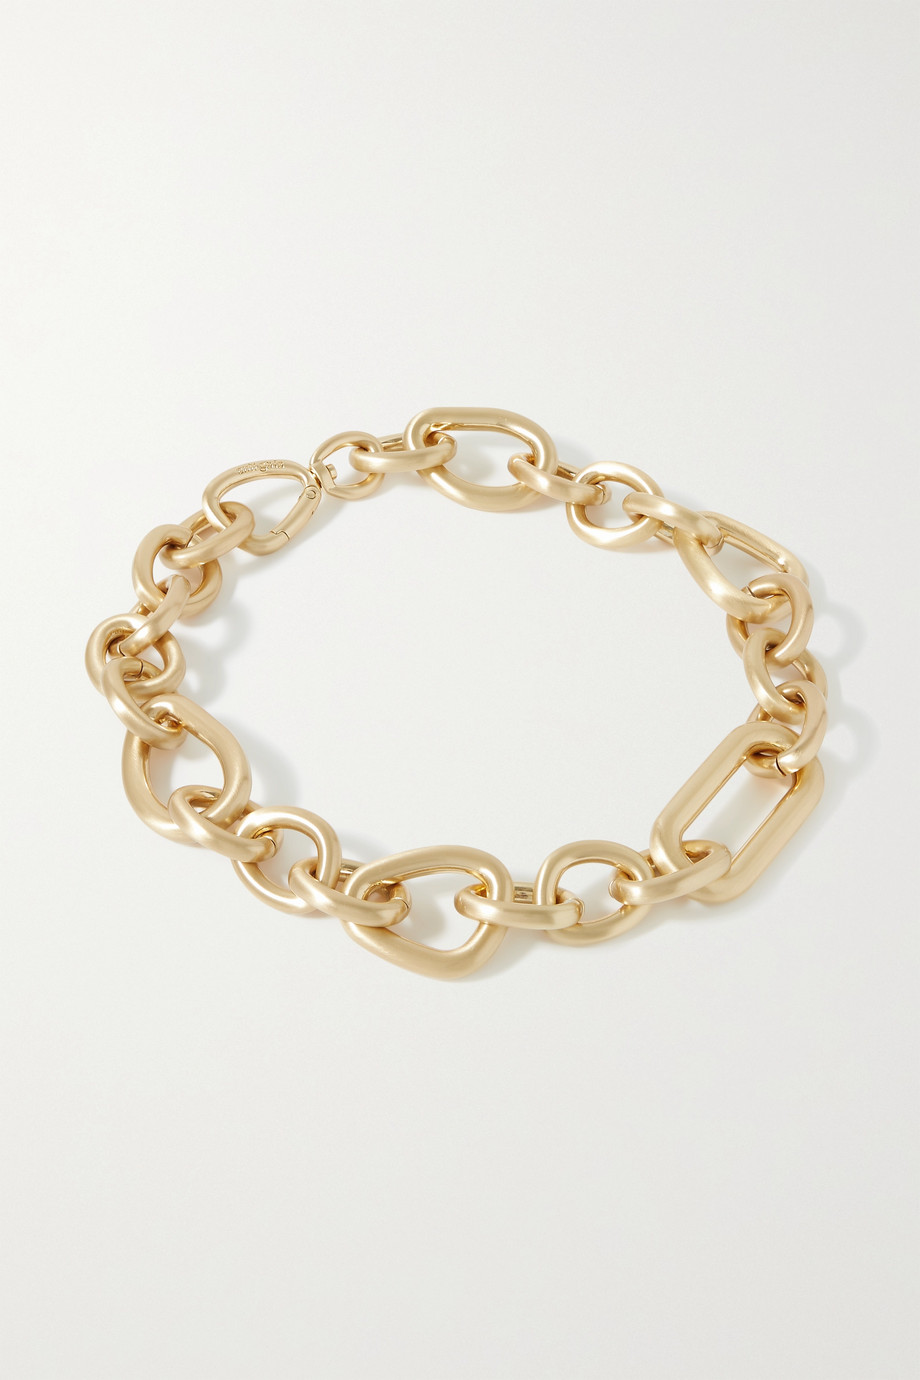 Cult Gaia Reyes gold-tone necklace